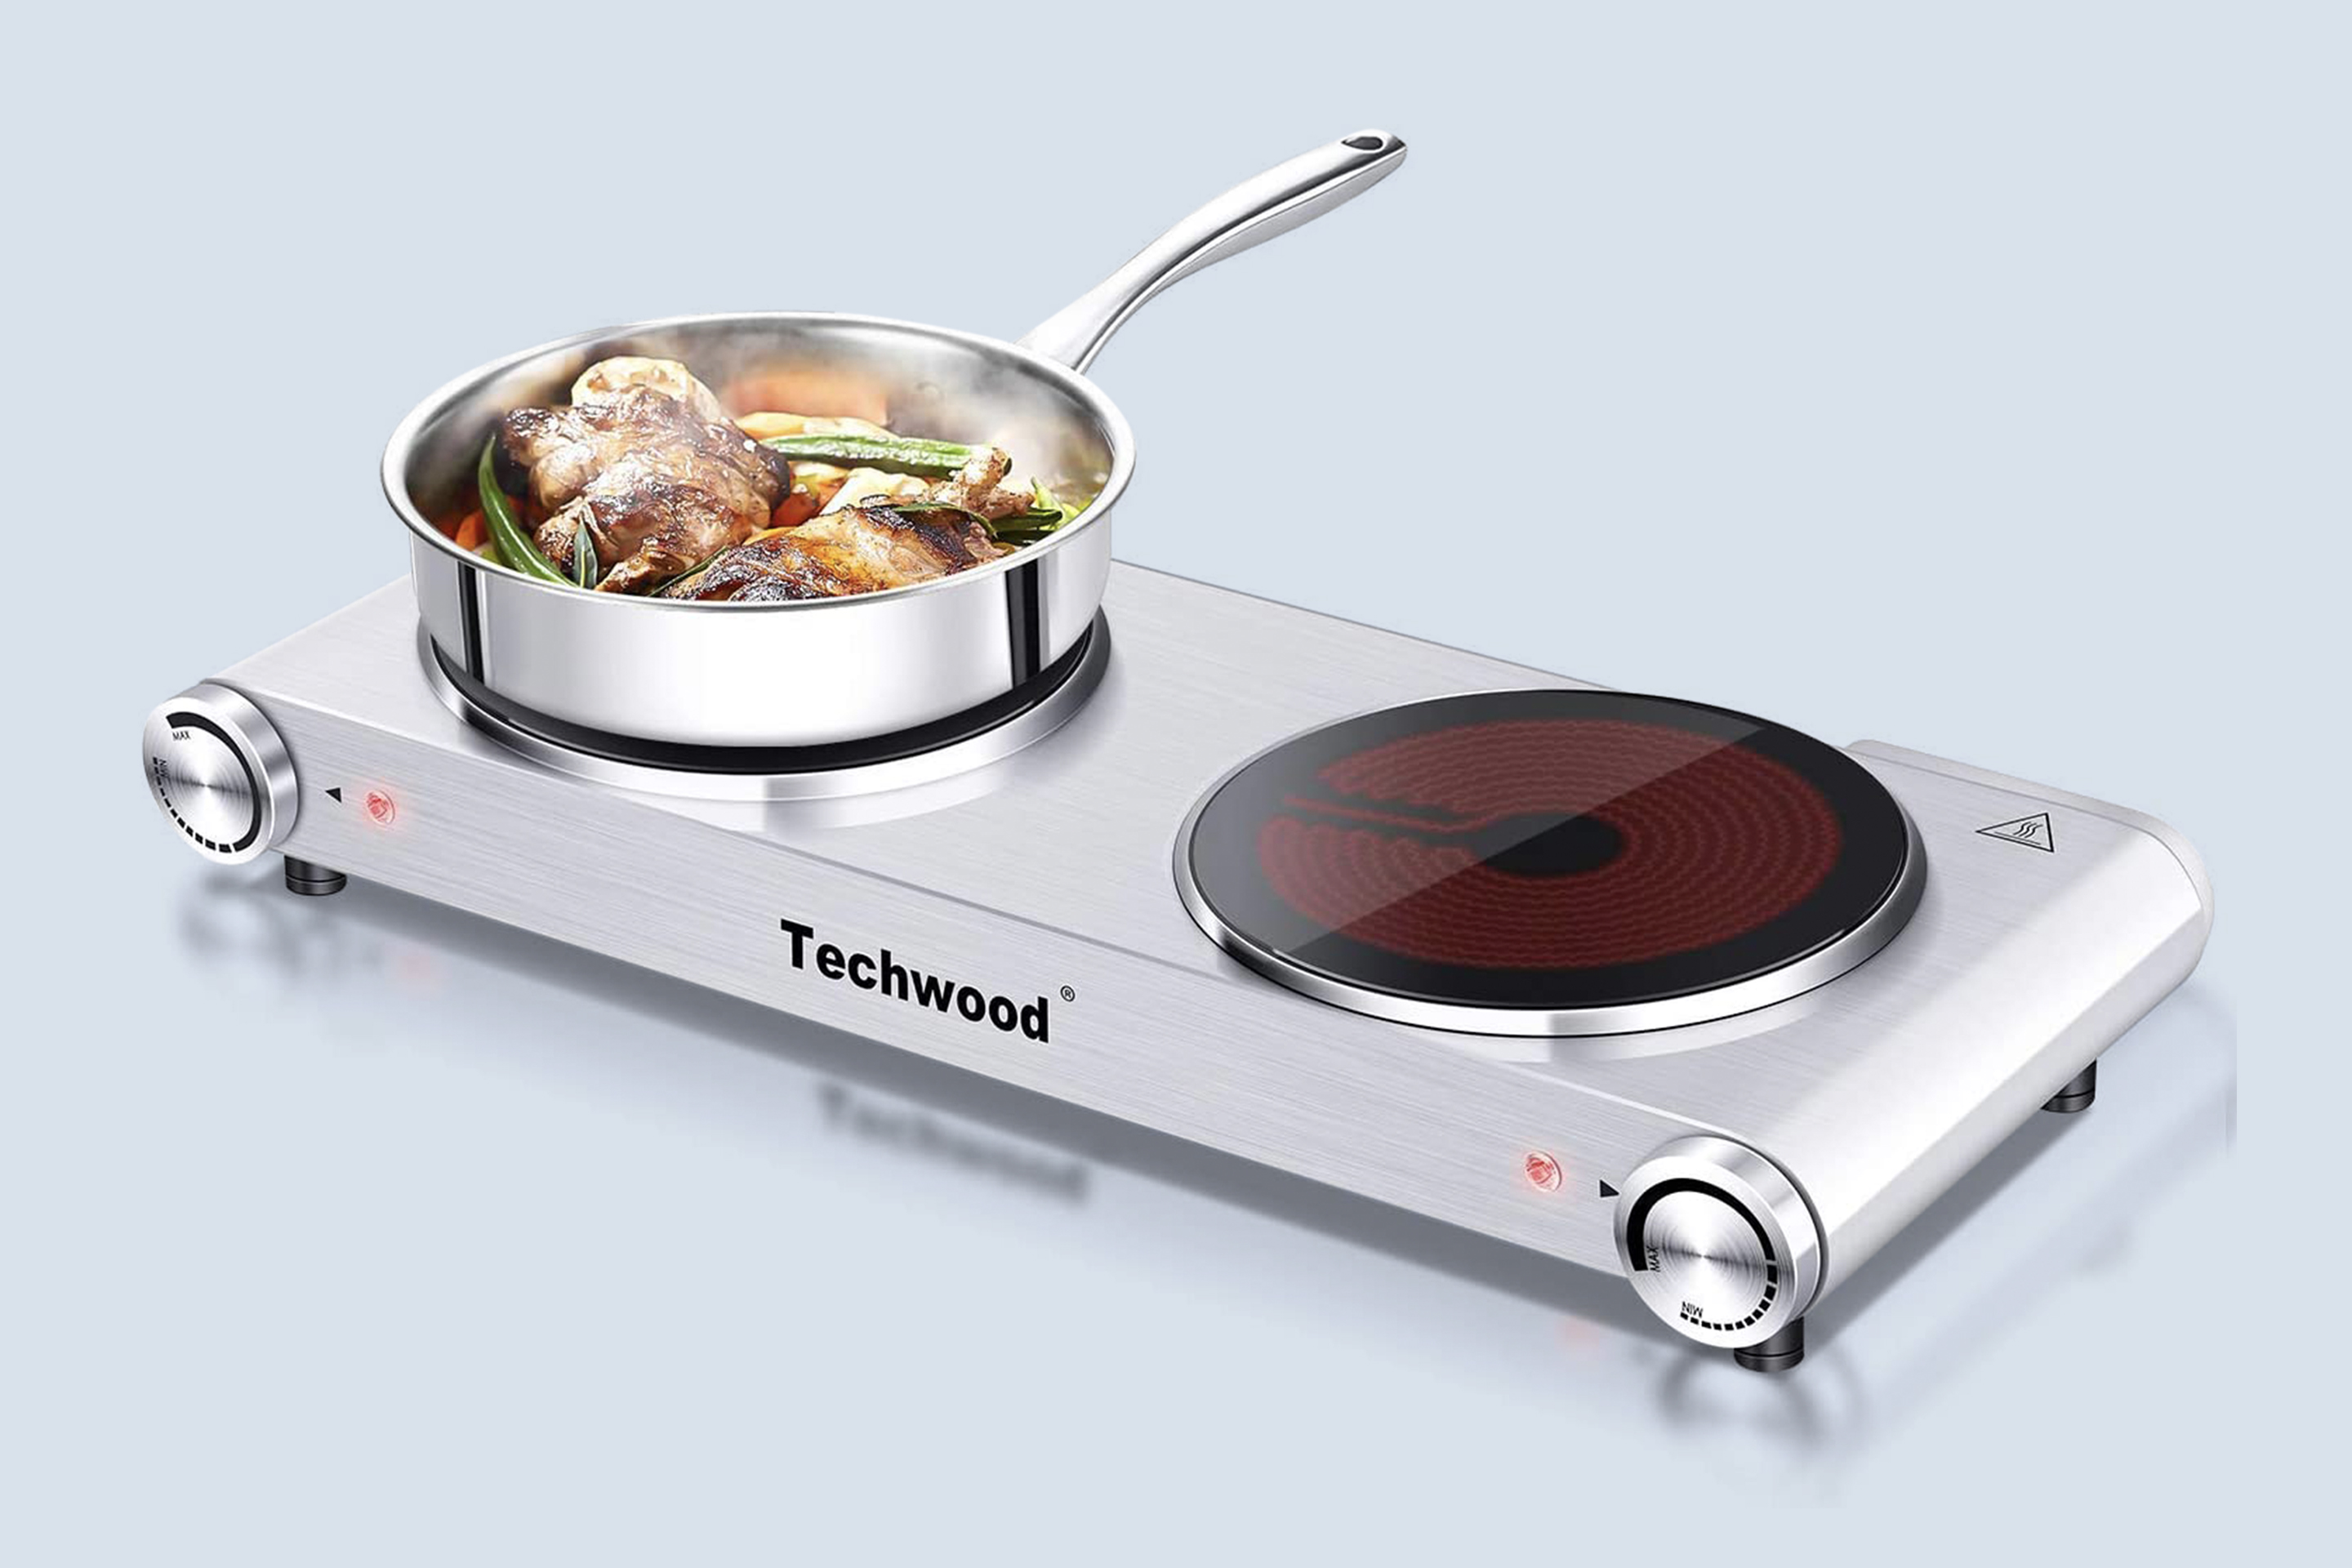 Techwood 1800W Electric Hot Plate